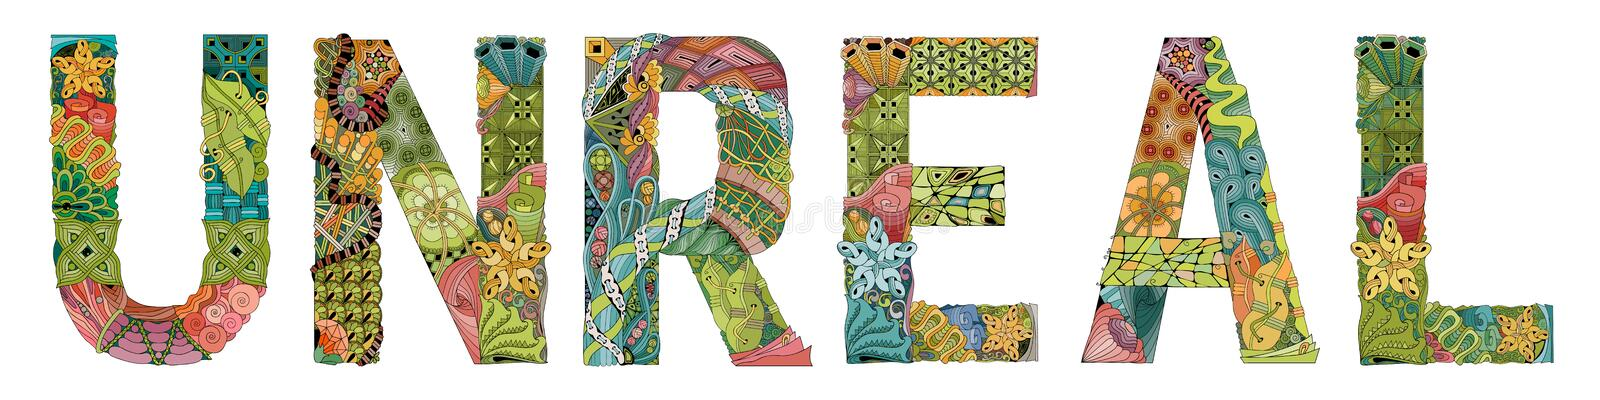 Word UNREAL. Vector zentangle object for decoration. Hand-painted art design. Hand drawn illustration word UNREAL for t-shirt and other decoration stock illustration